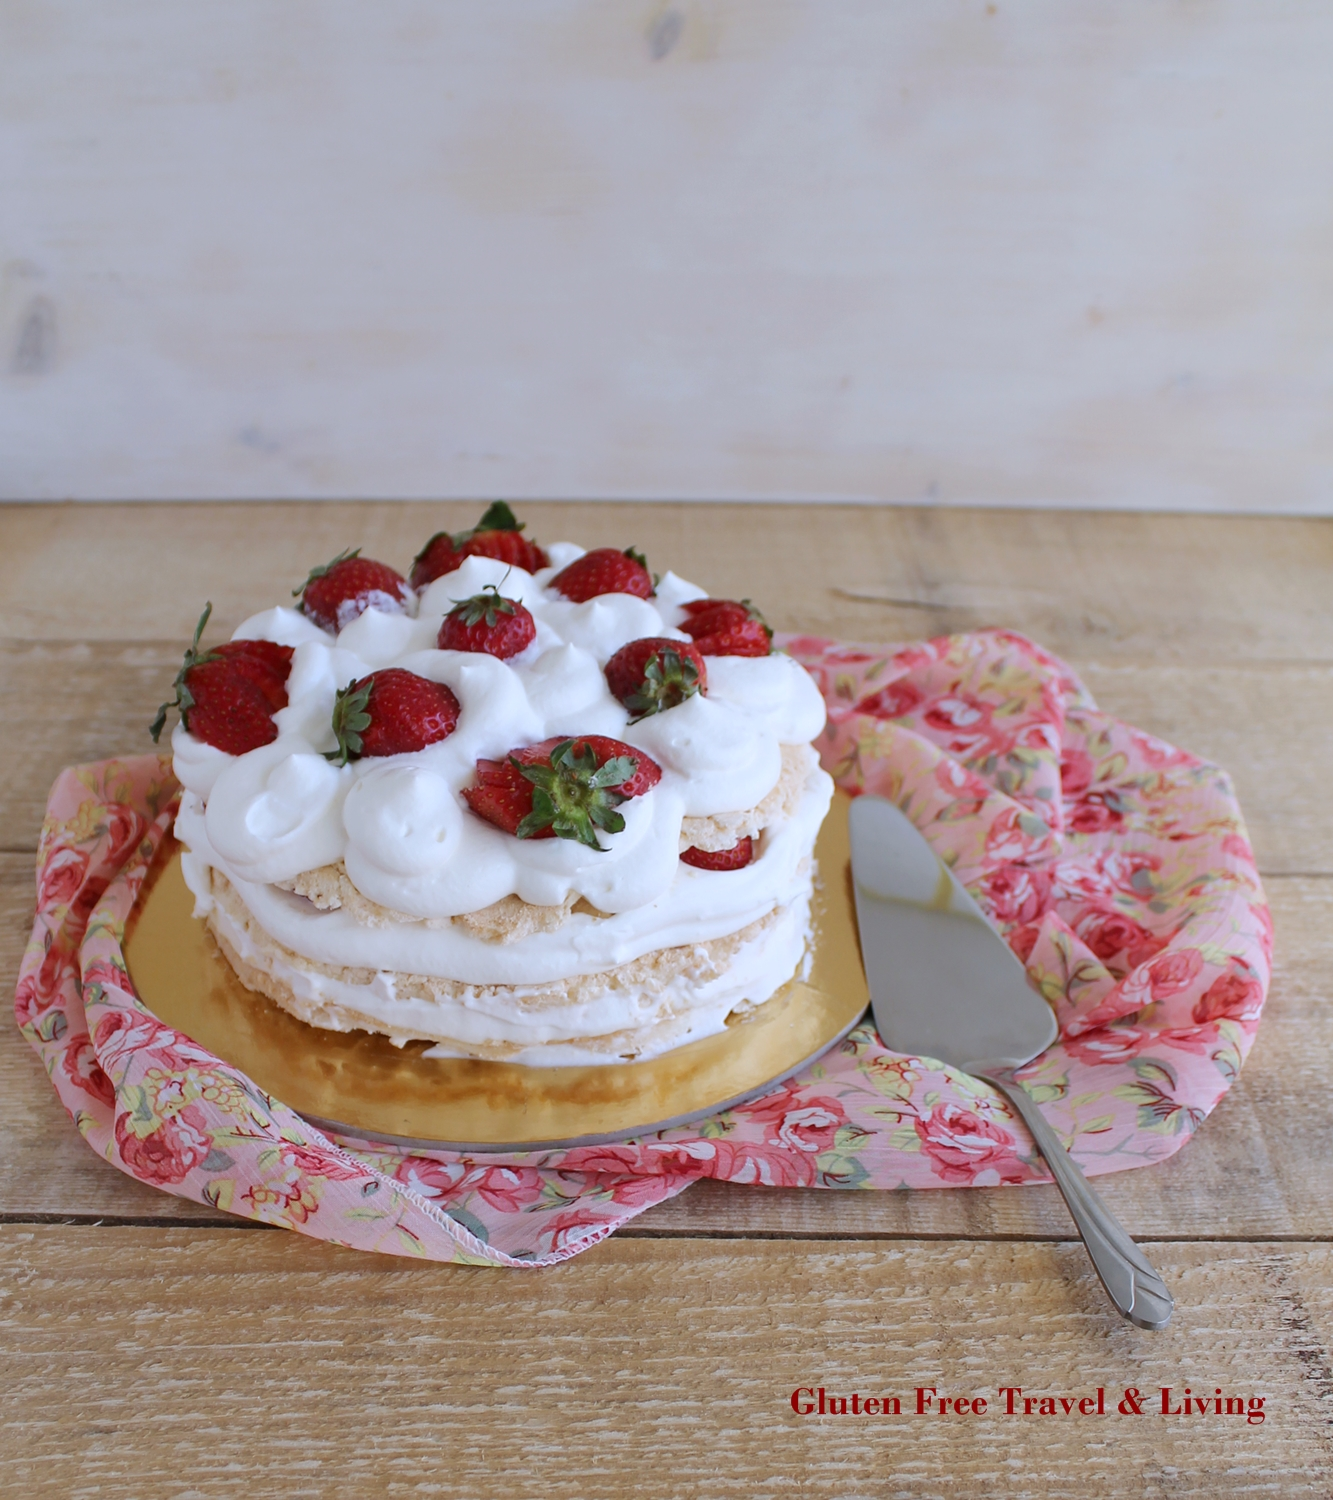 Torta di meringa, crema e fragole senza glutine - Gluten Free Travel and Living